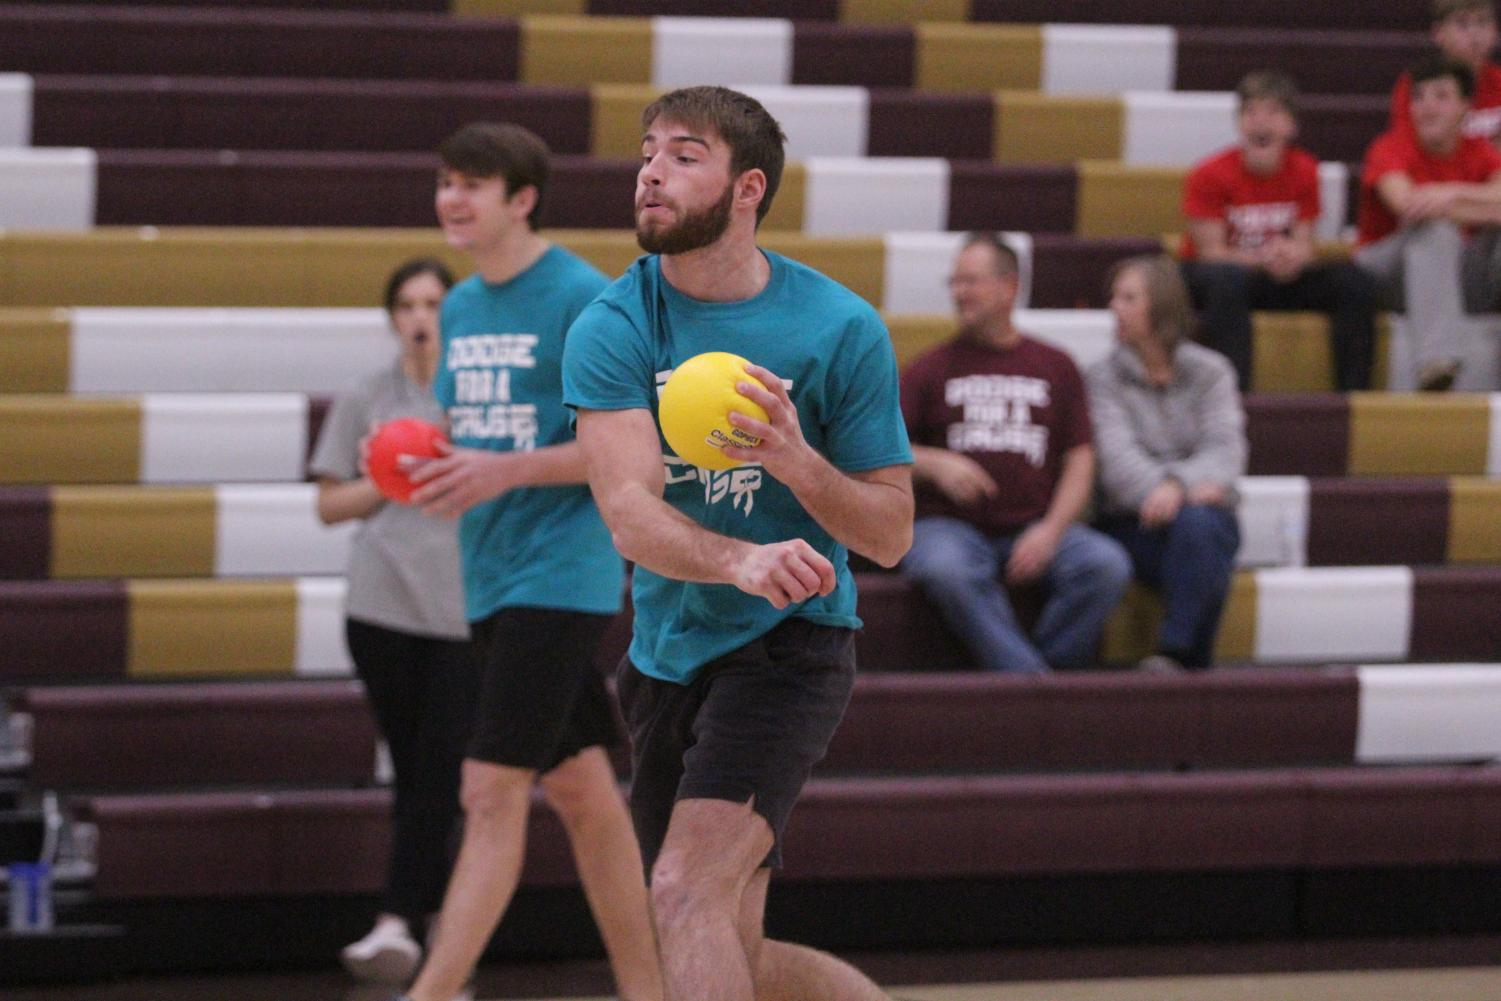 Senior Keaton Markley throws a dodgeball at the opposing.